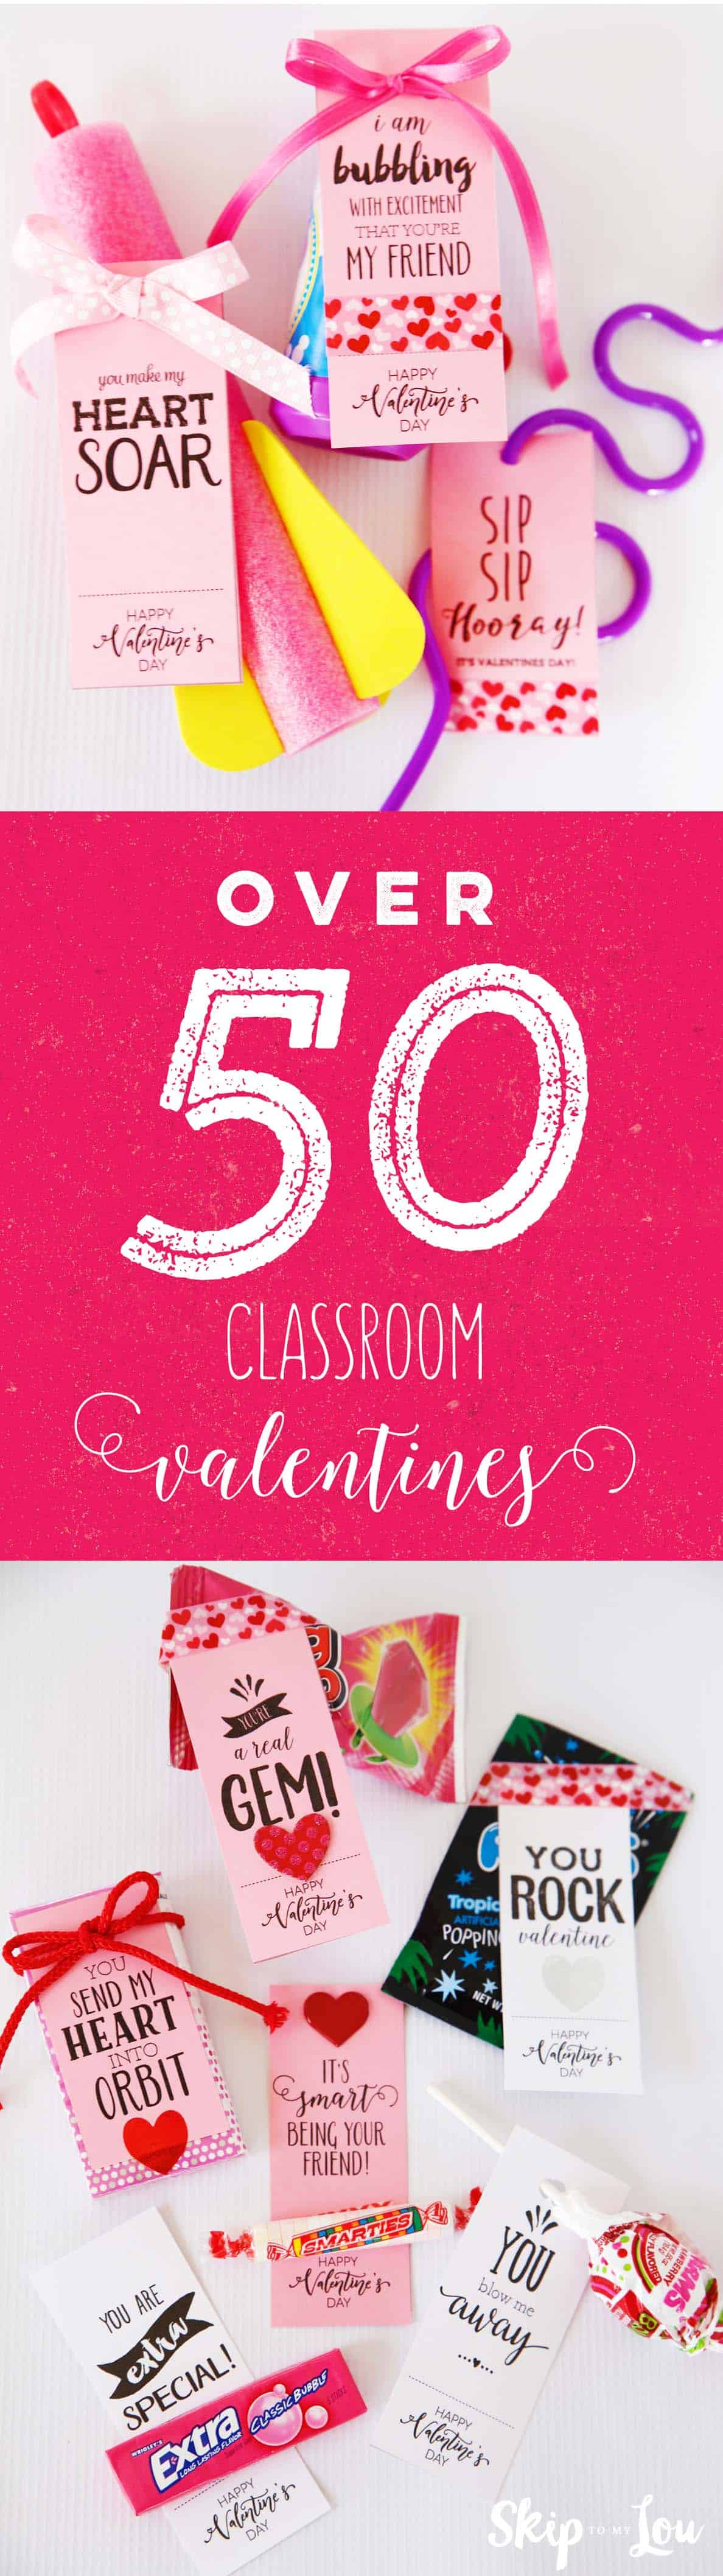 50 classroom valentines - Cute Valentines Day Sayings For Friends